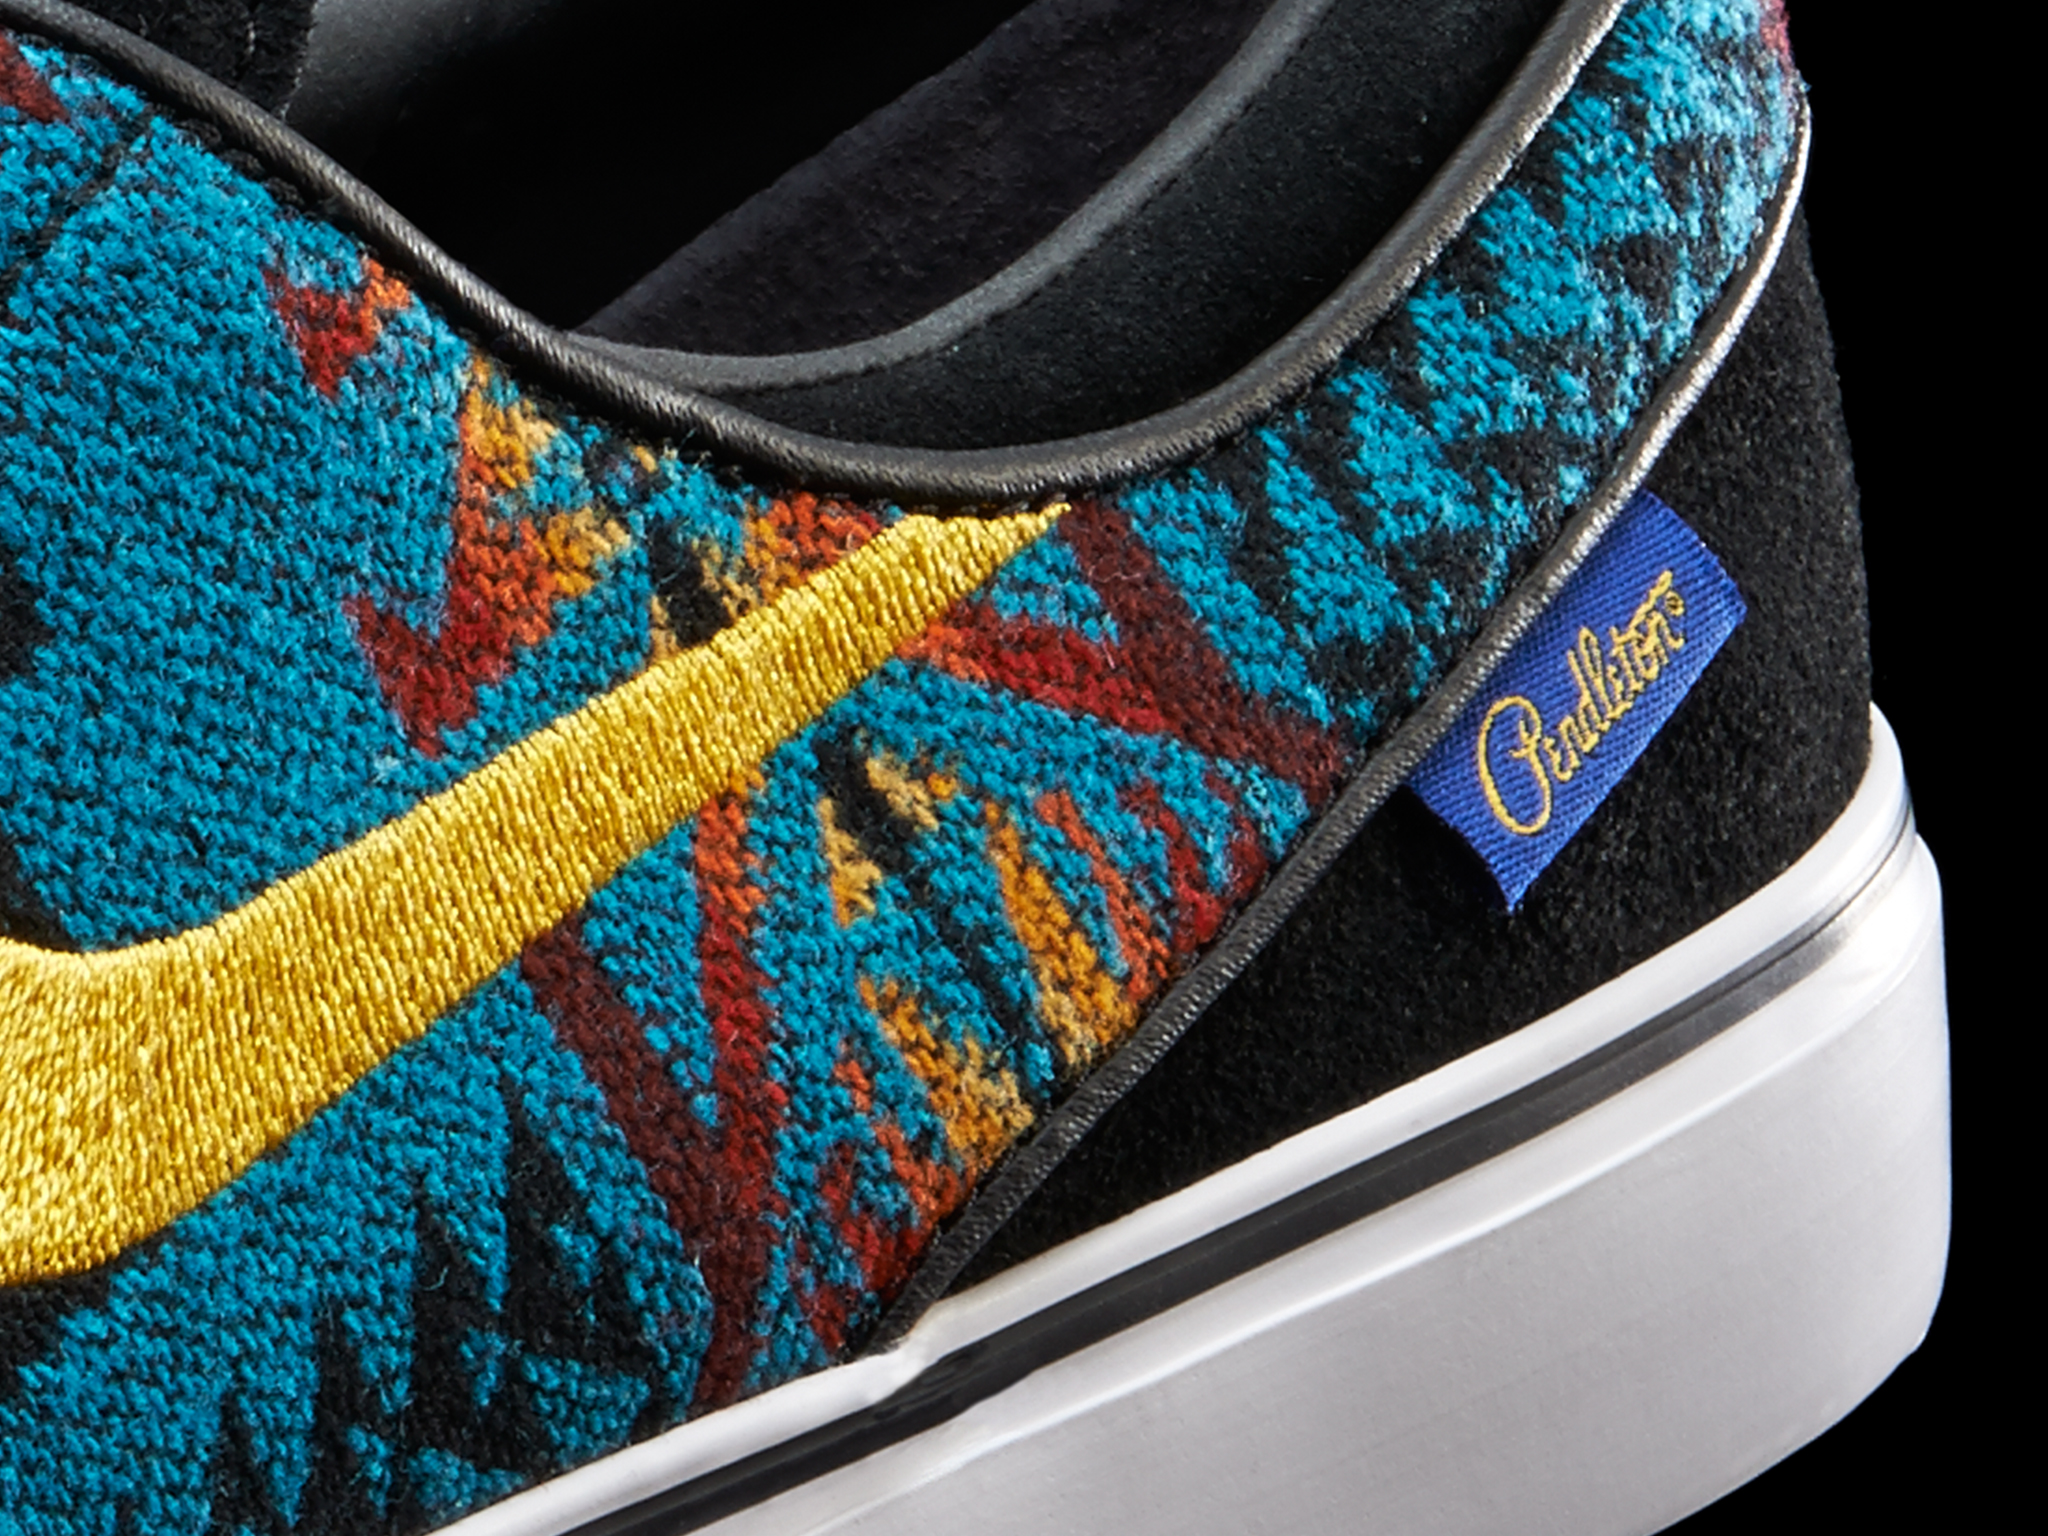 c68dcb0e4796 Made To Order  NIKEiD x Pendleton Collection